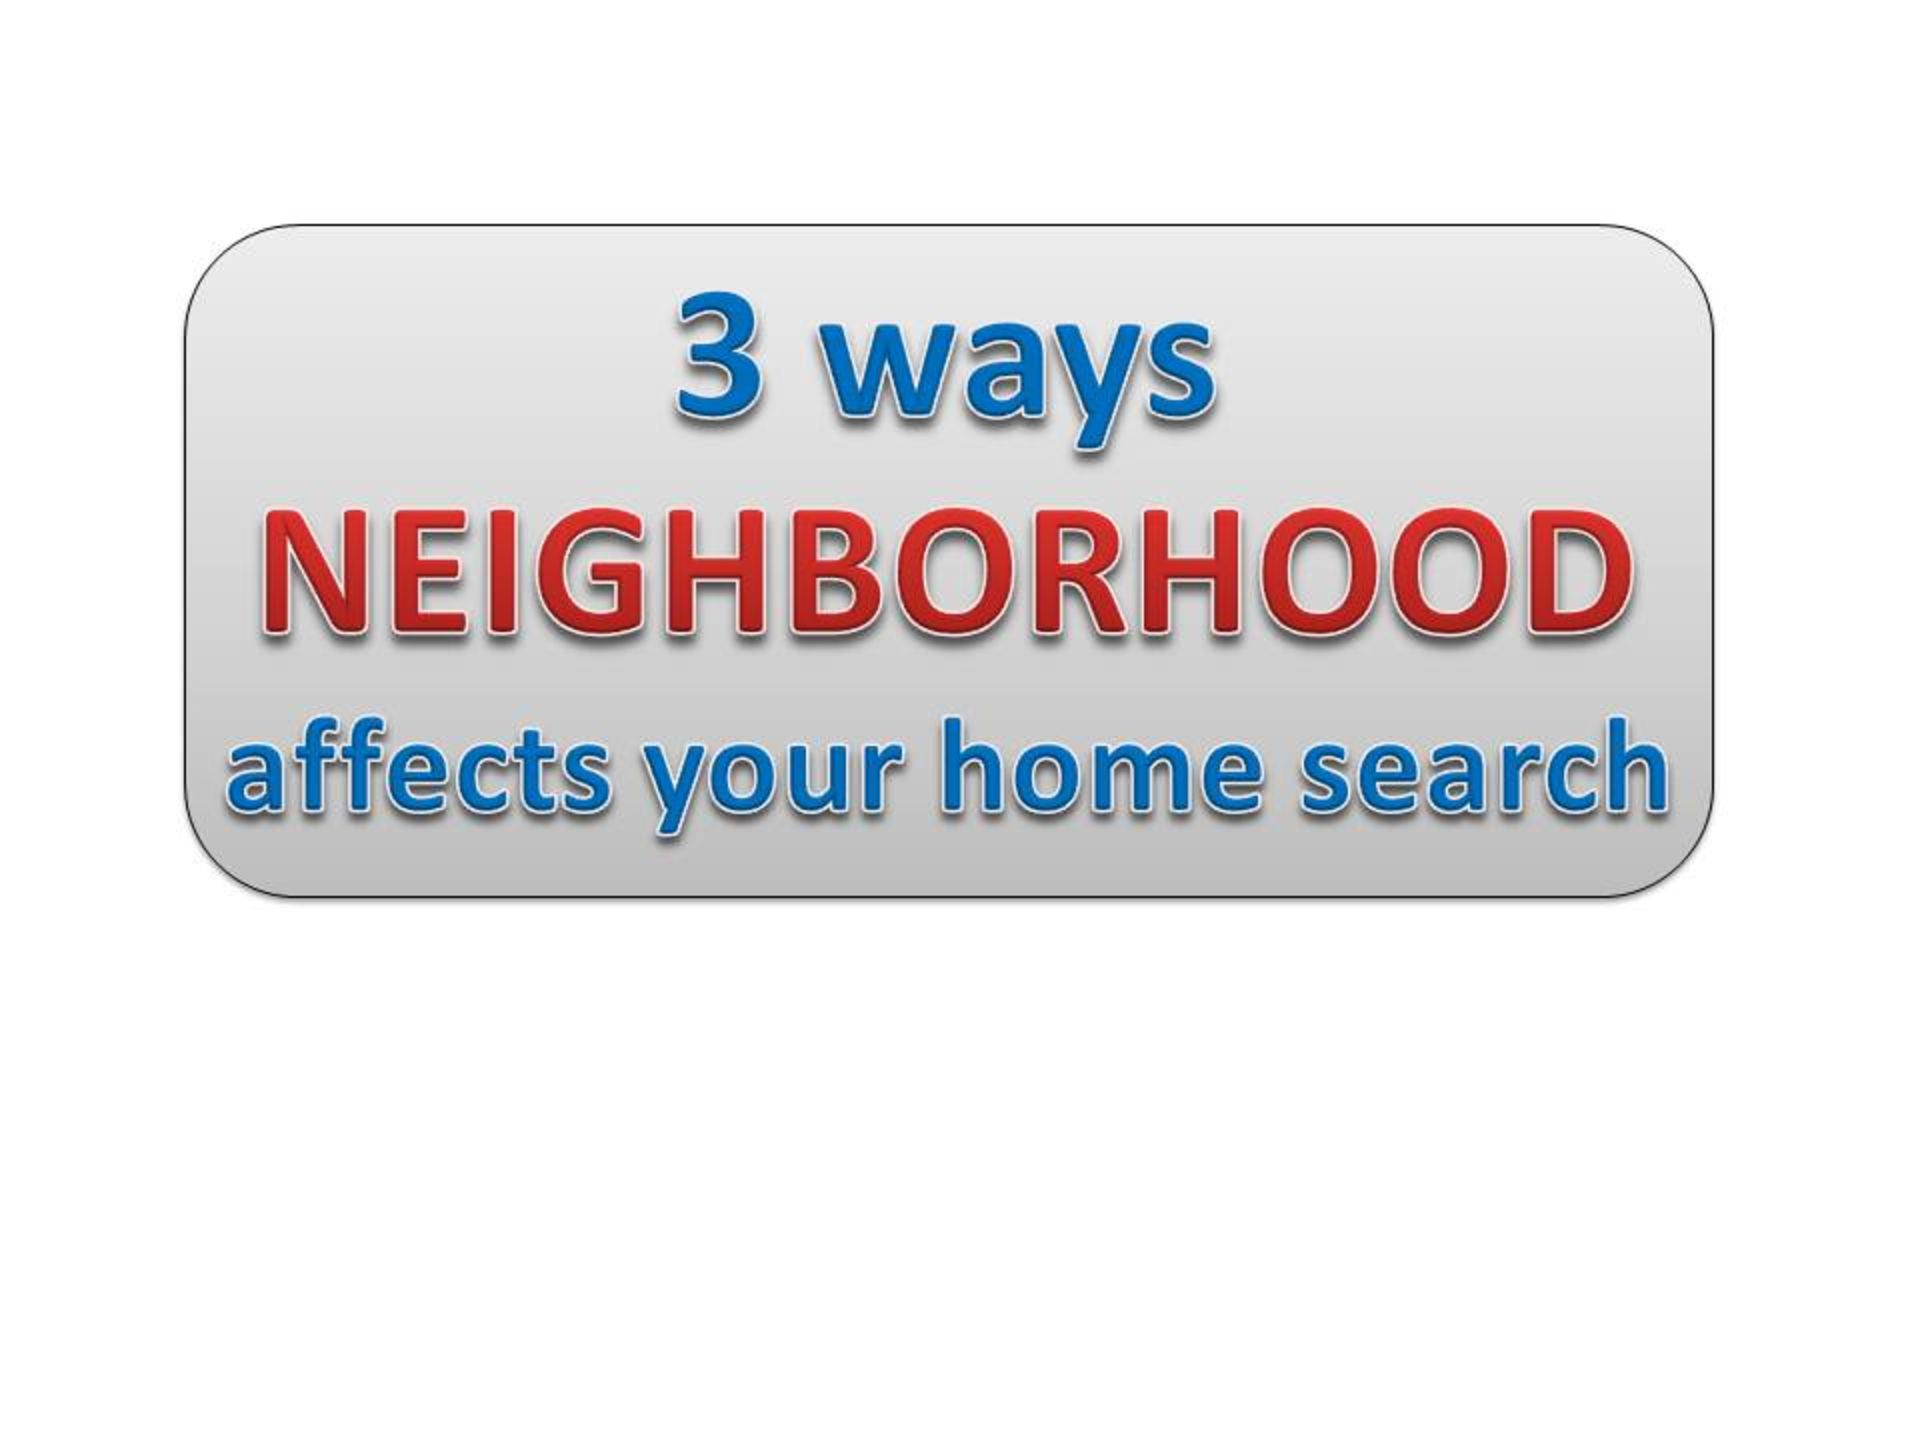 3 Ways Neighborhood Affects Your Home Search